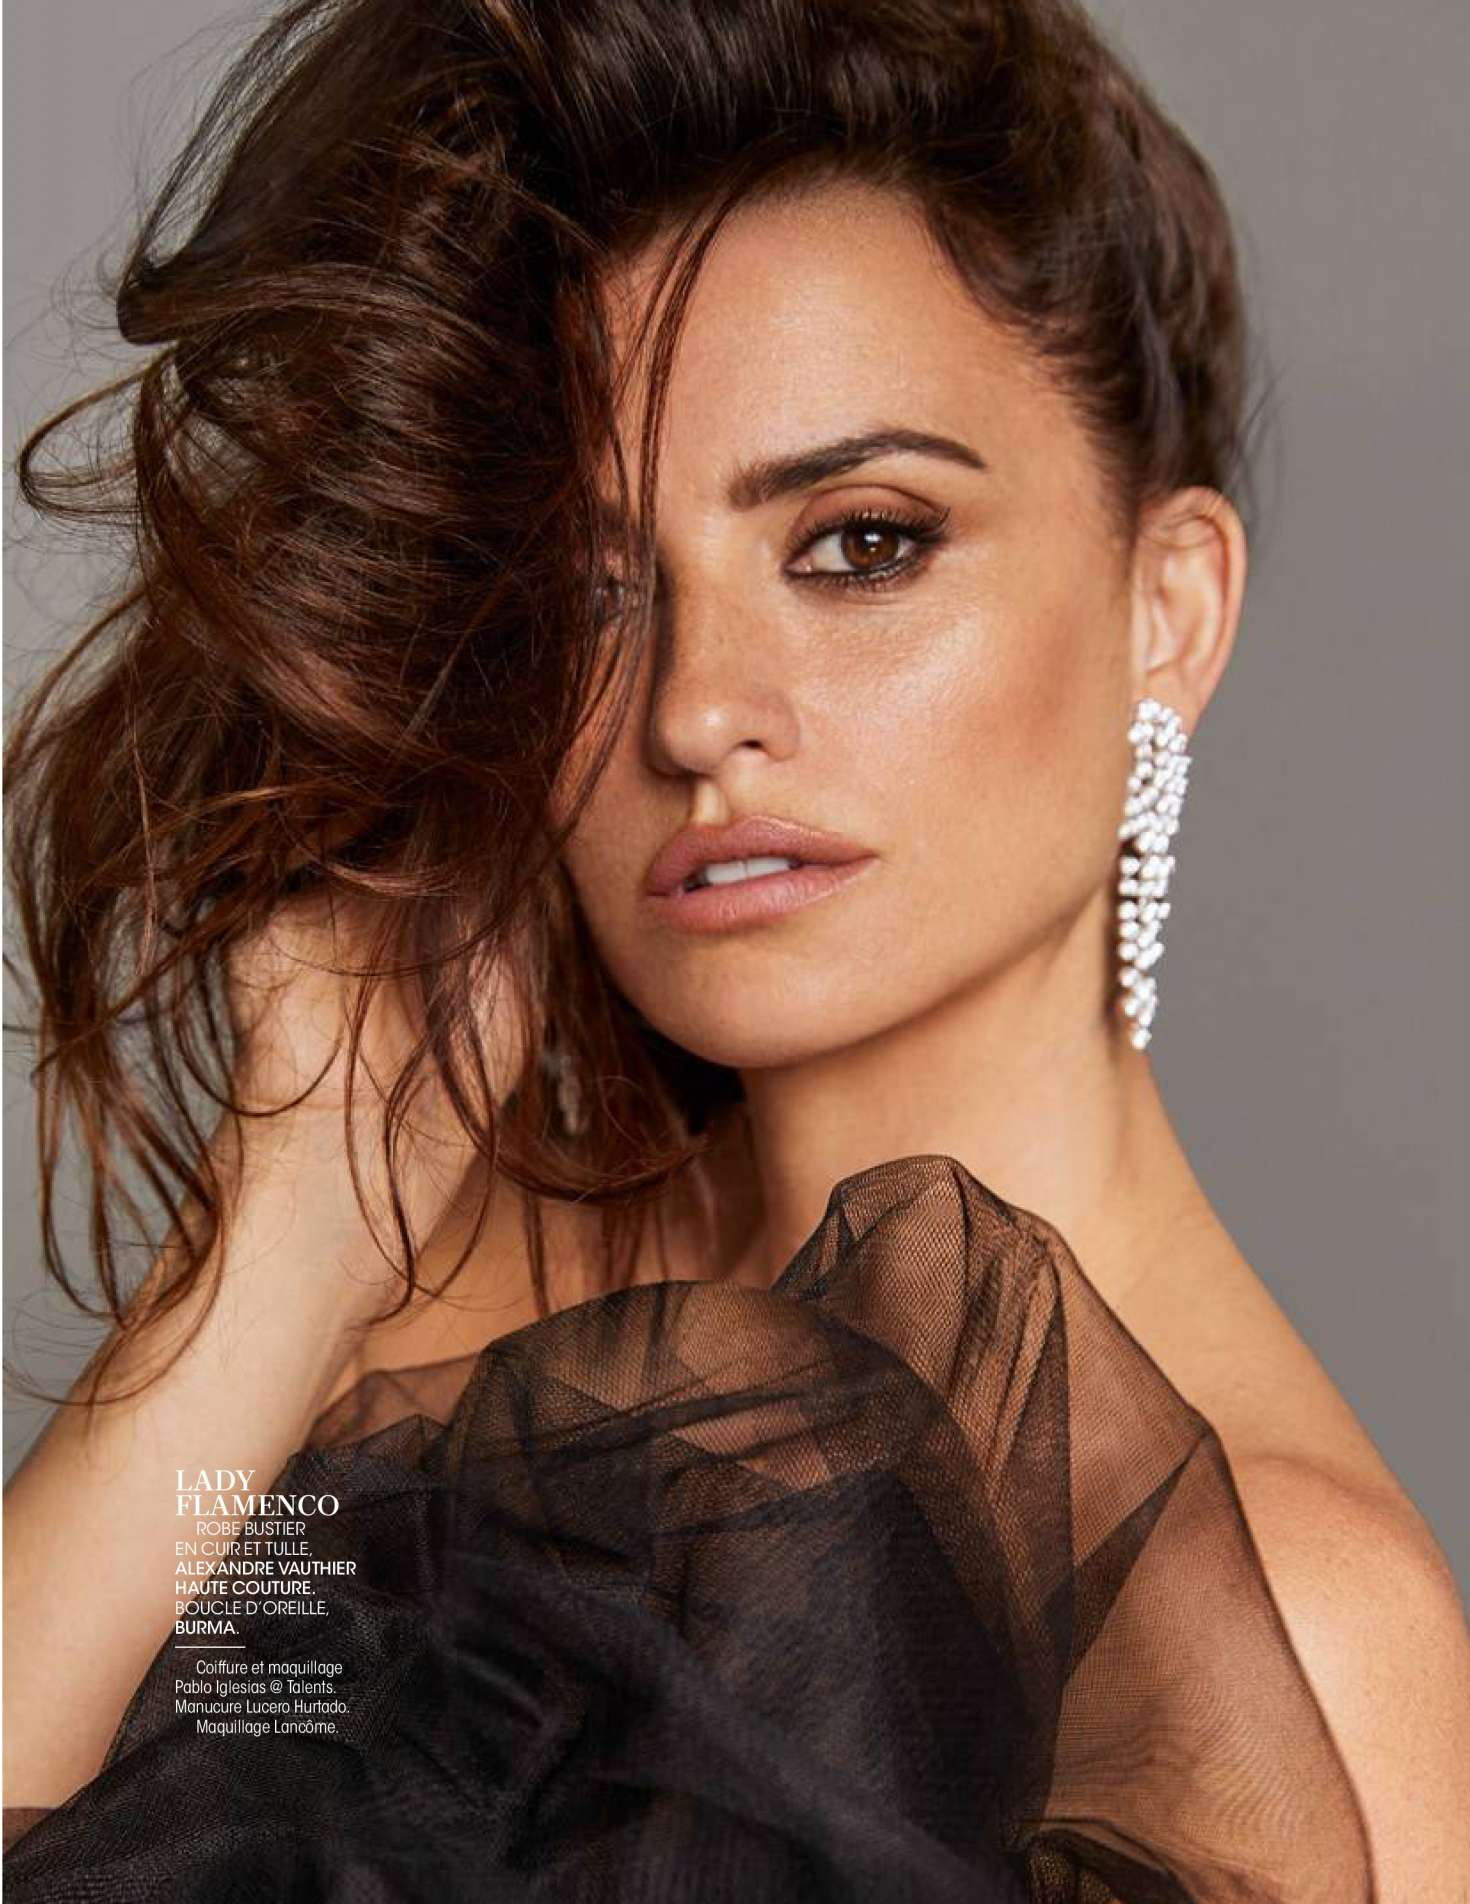 Pen-lope-Cruz-for-Madame-Figaro-May-2018-penelope-cruz-41357419-1470-1904.jpg